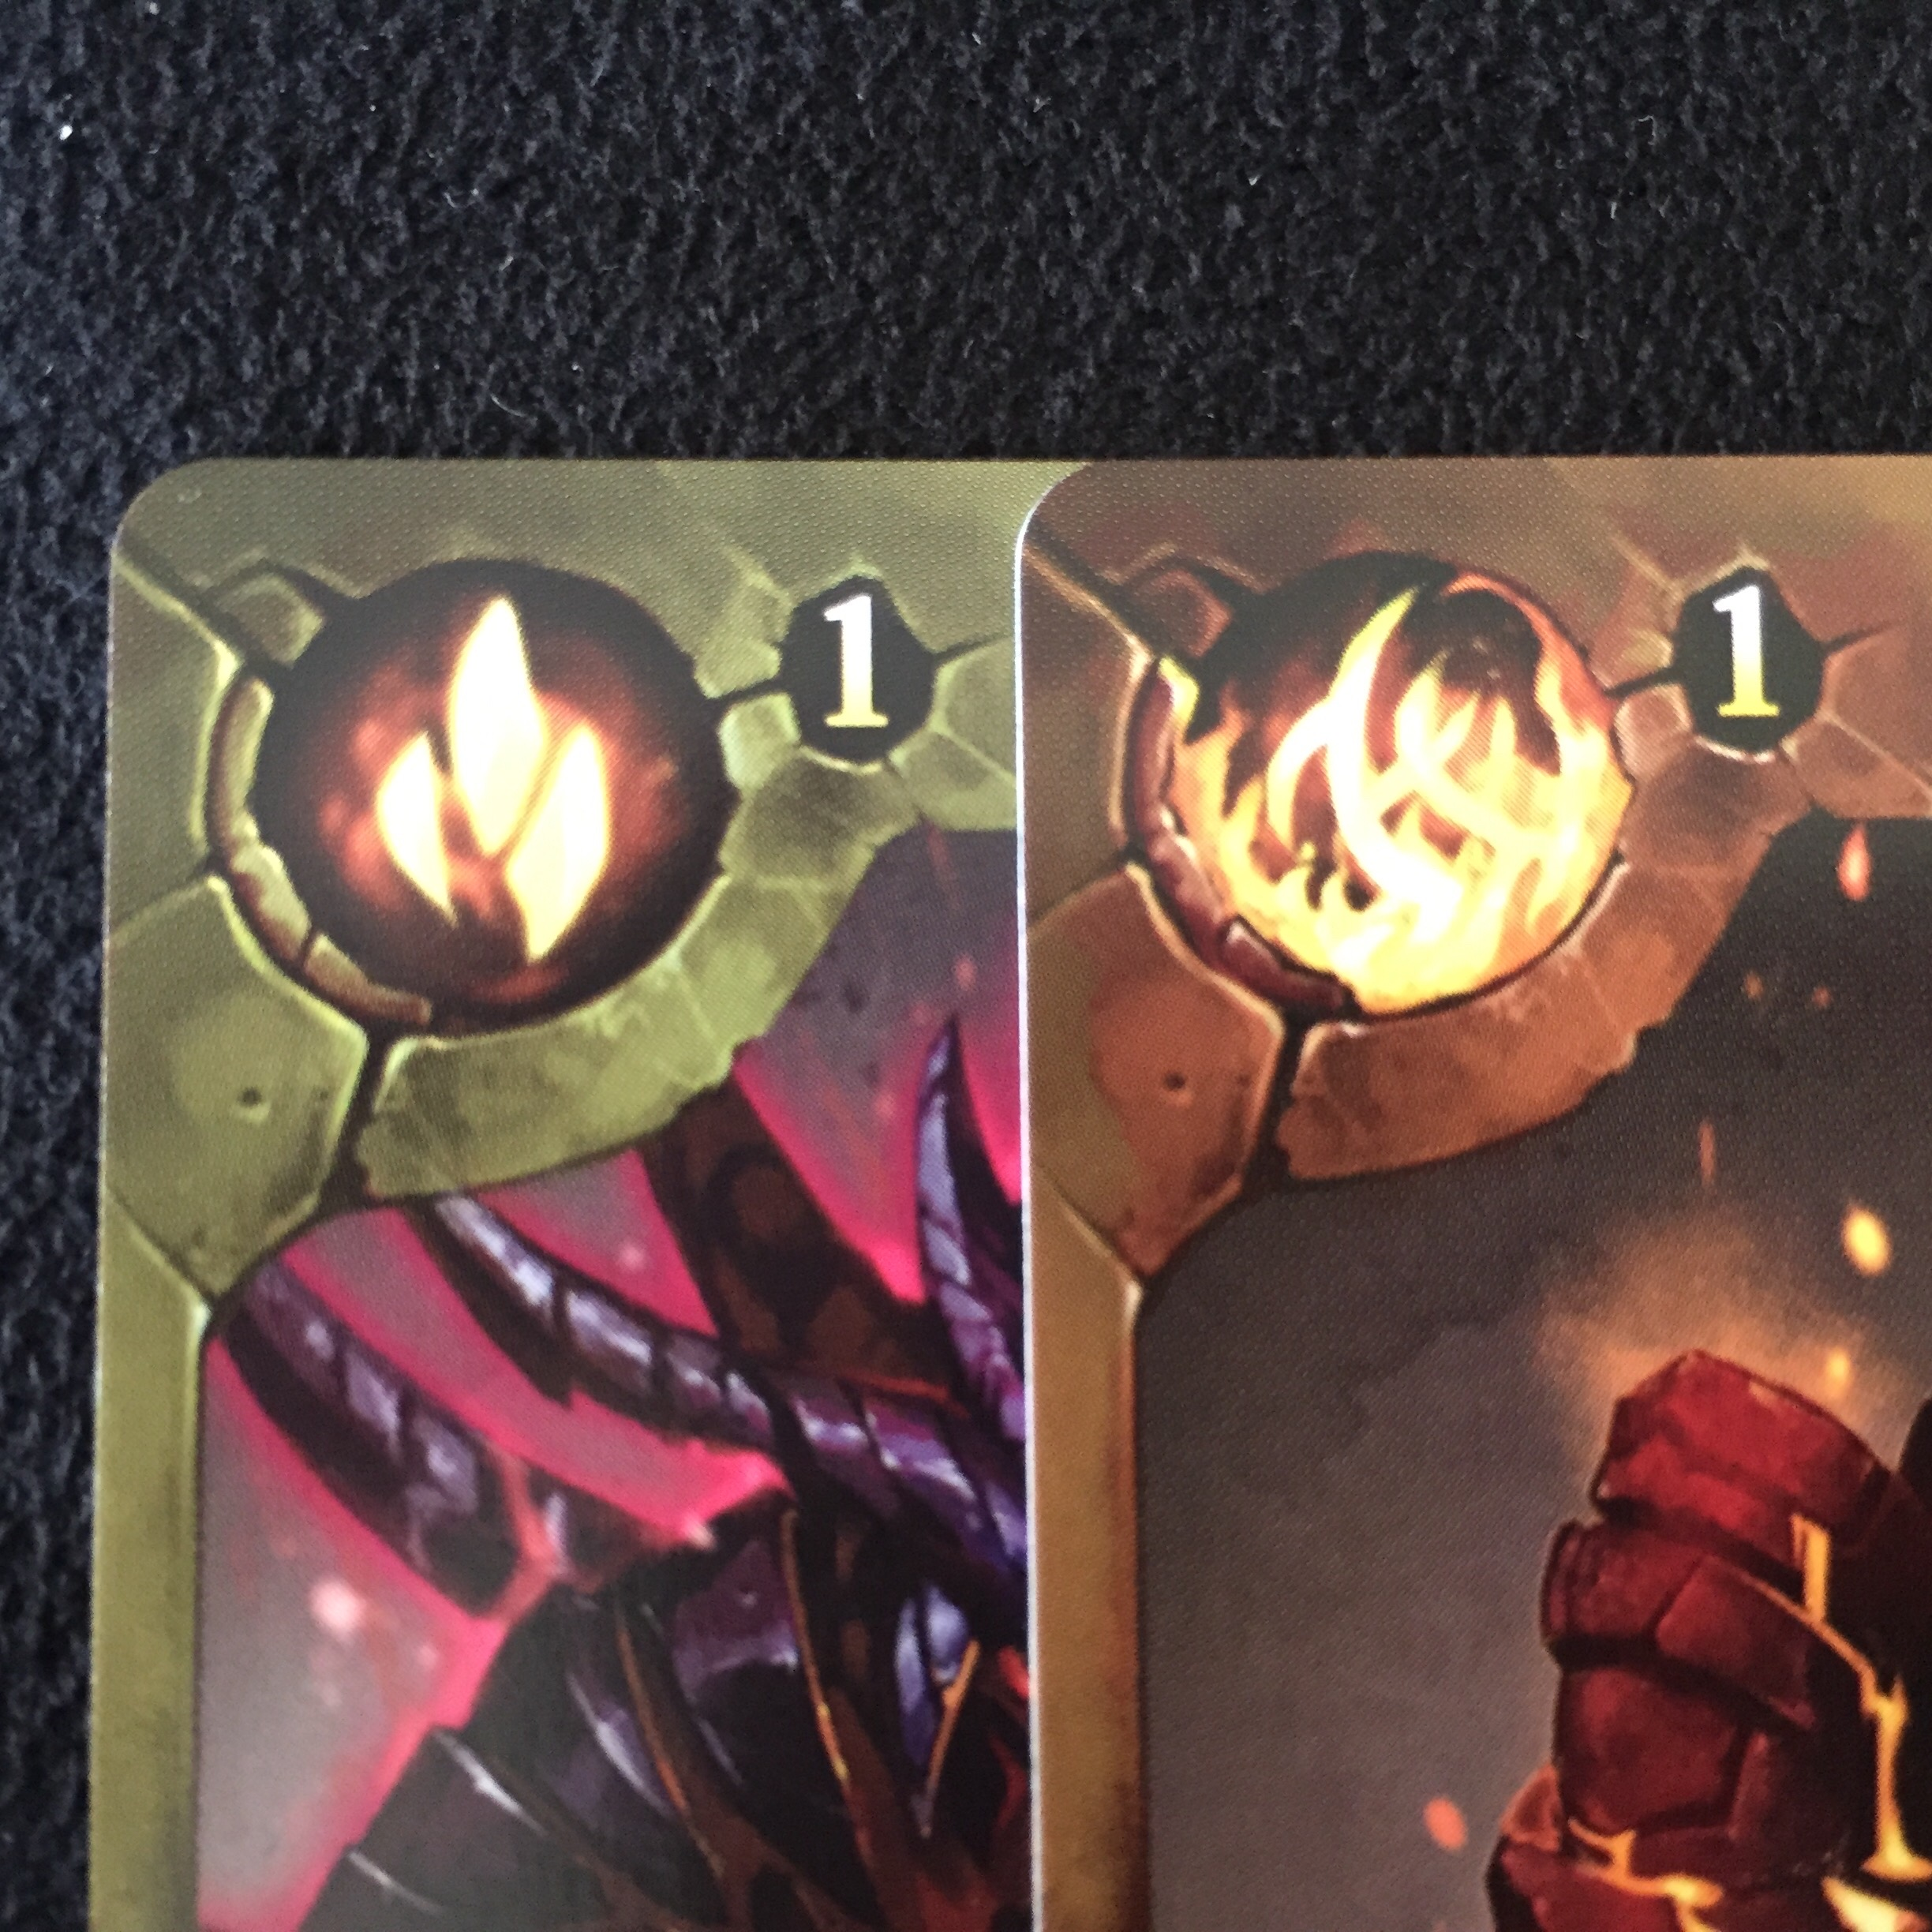 One is XP. One counts the number of fire elements. What? Why are you confused?